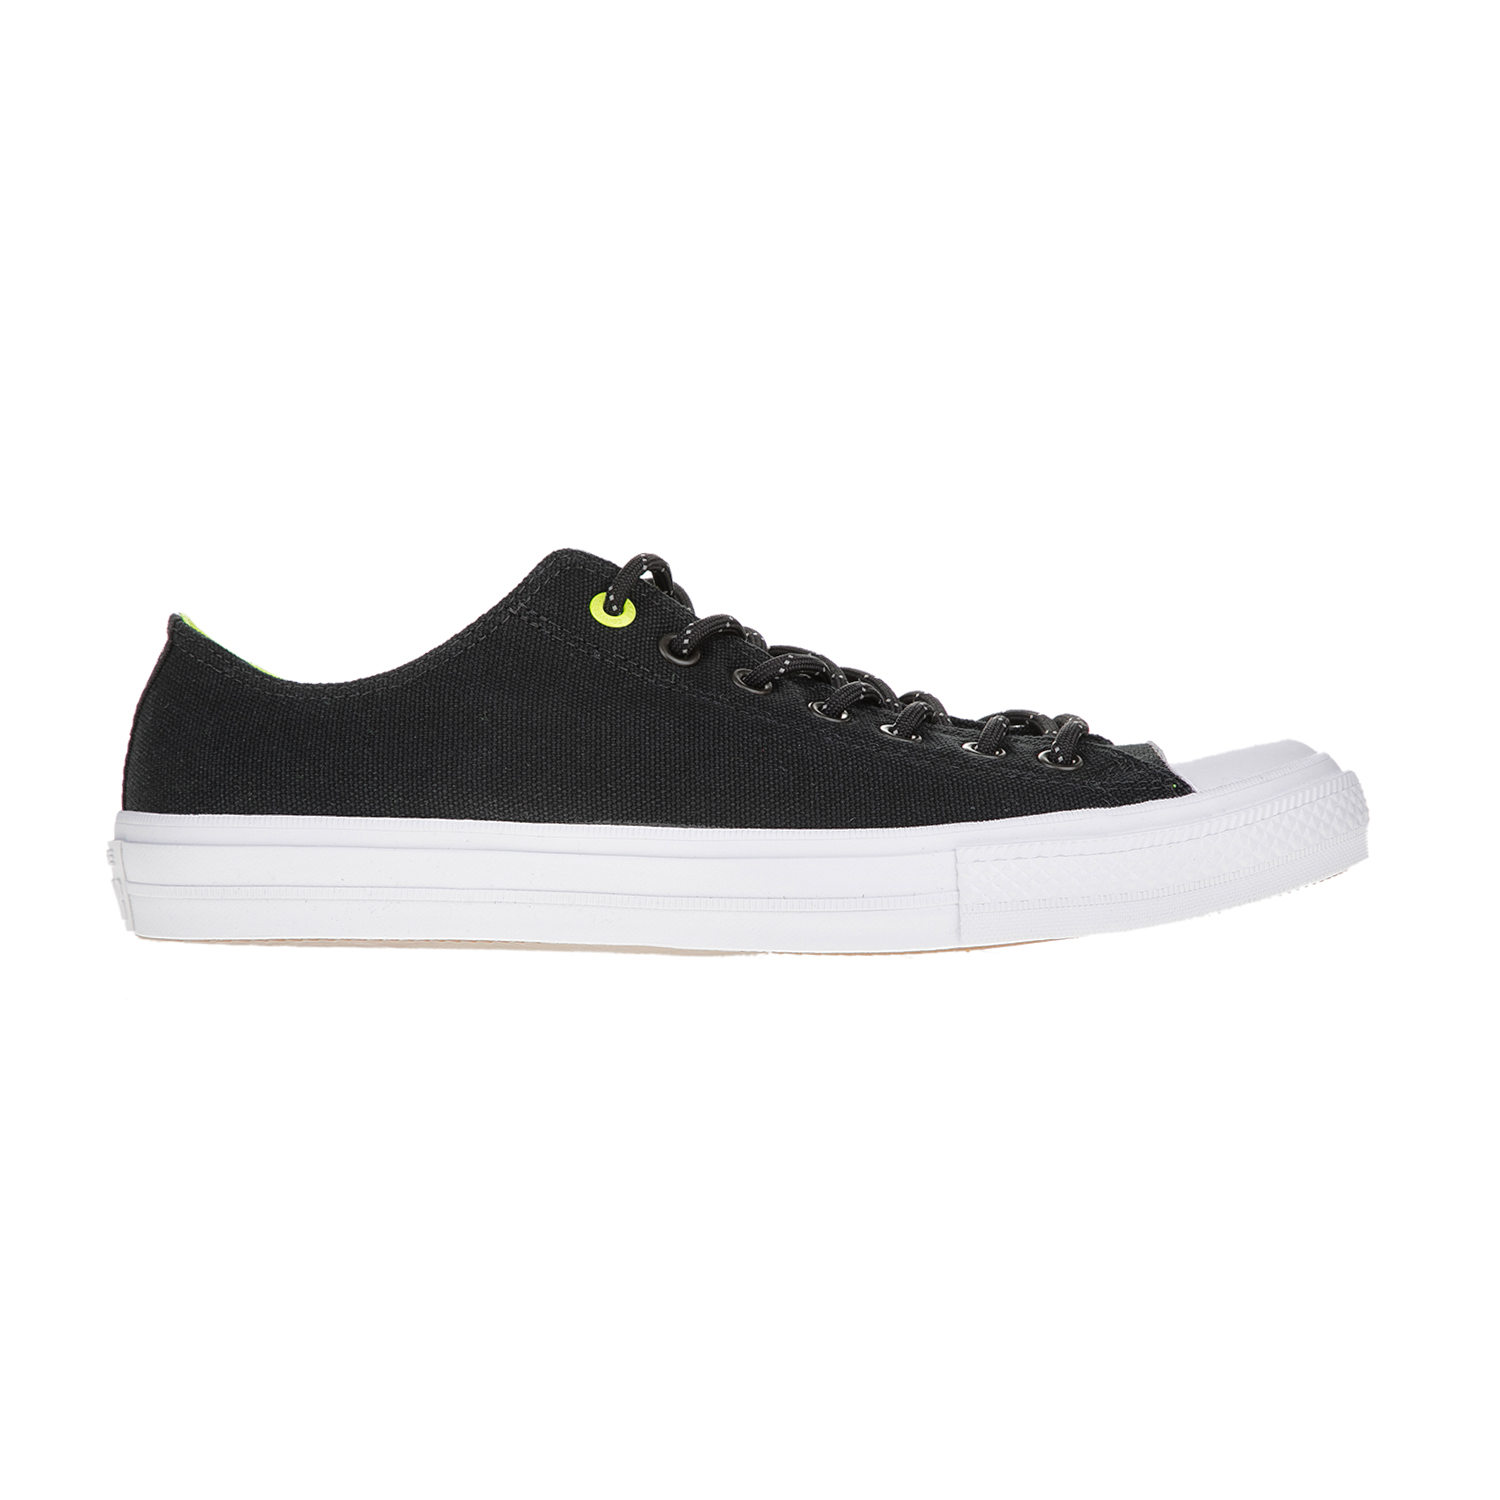 -30% Factory Outlet CONVERSE – Ανδρικά παπούτσια Chuck Taylor All Star II  Ox σκούρο γκρι 5154da3744d